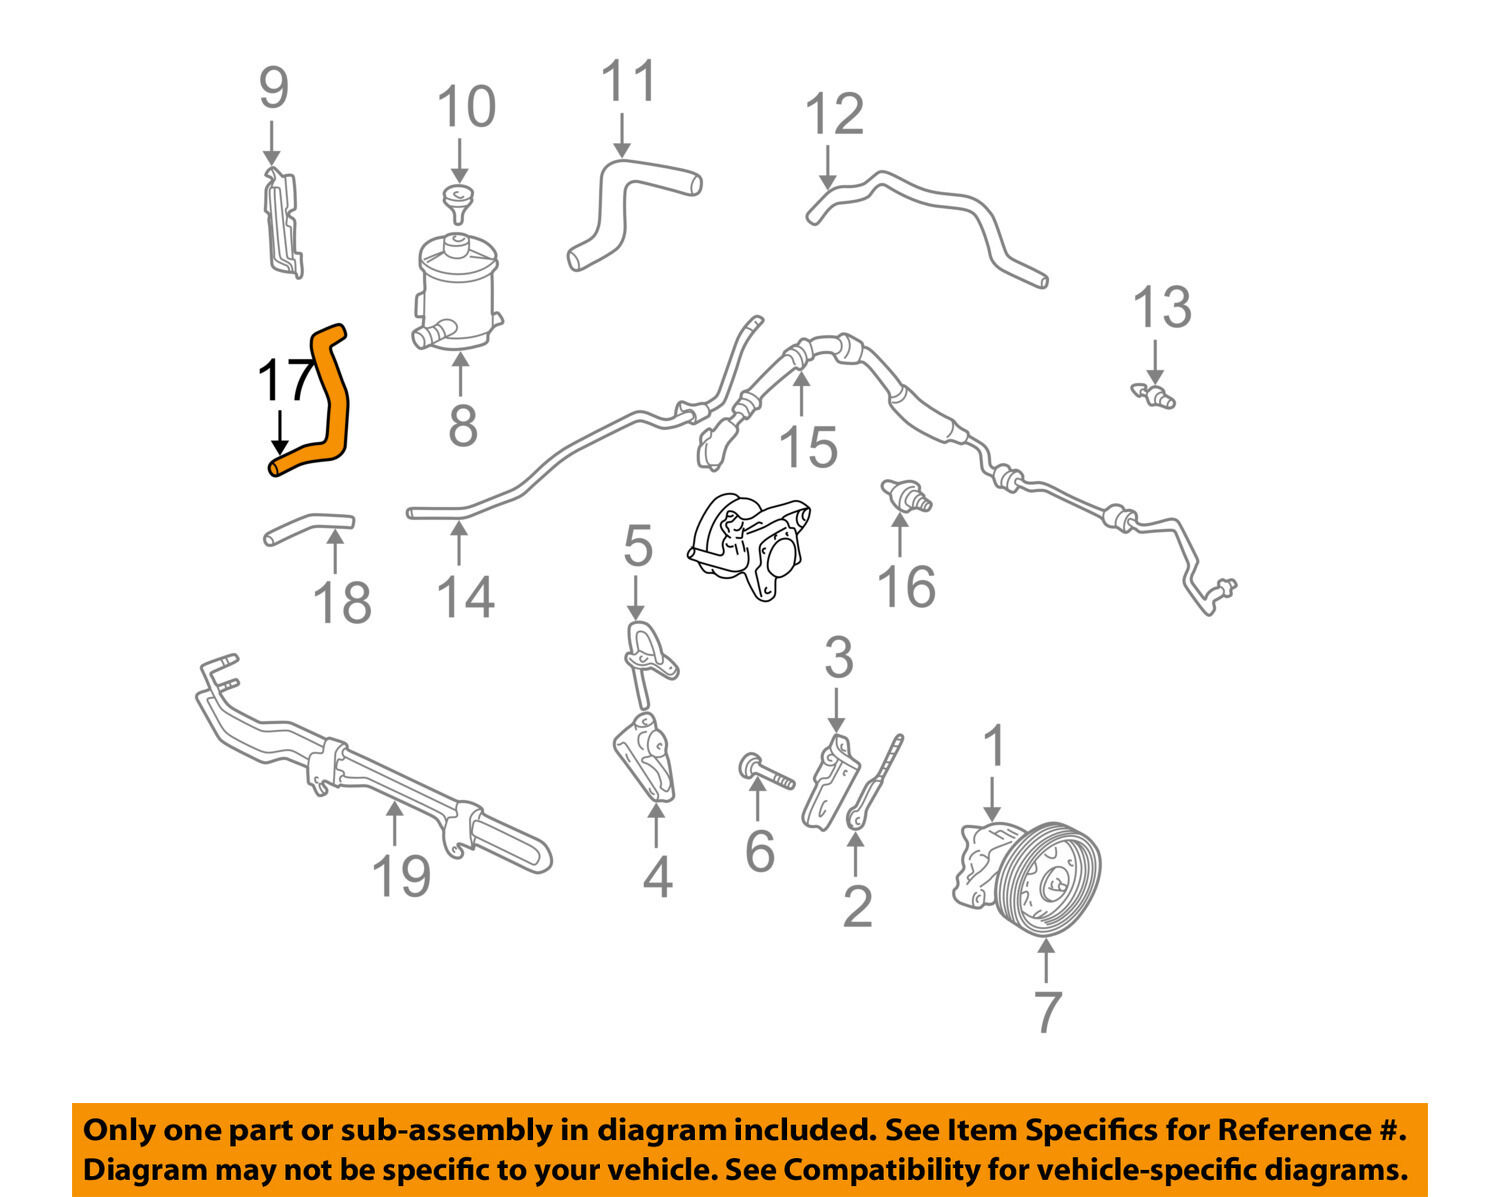 Honda Oem Pump Hose Power Steering Cooler Tube 53732s3va01 2292 And Hoses 1 Of 1only Available